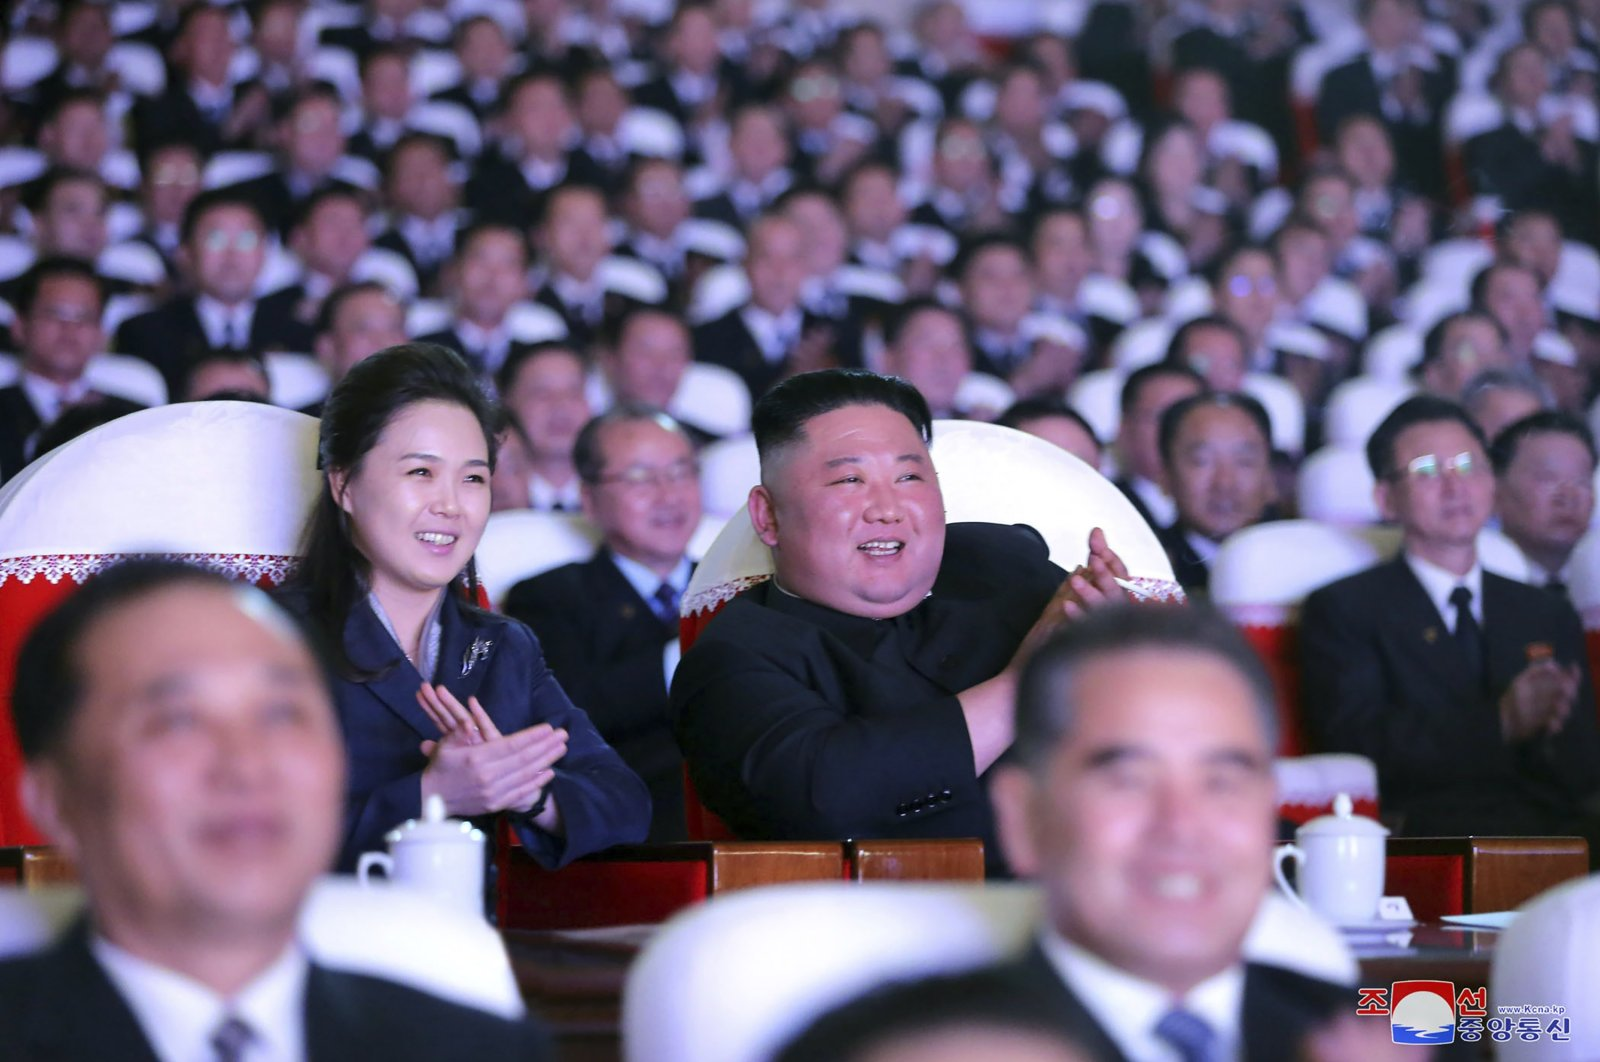 In this photo provided by the North Korean government, North Korean leader Kim Jong Un and his wife Ri Sol Ju watch a performance marking the birth anniversary of Kim Jong Il, Pyongyang, North Korea, Feb. 16, 2021. (AP Photo)